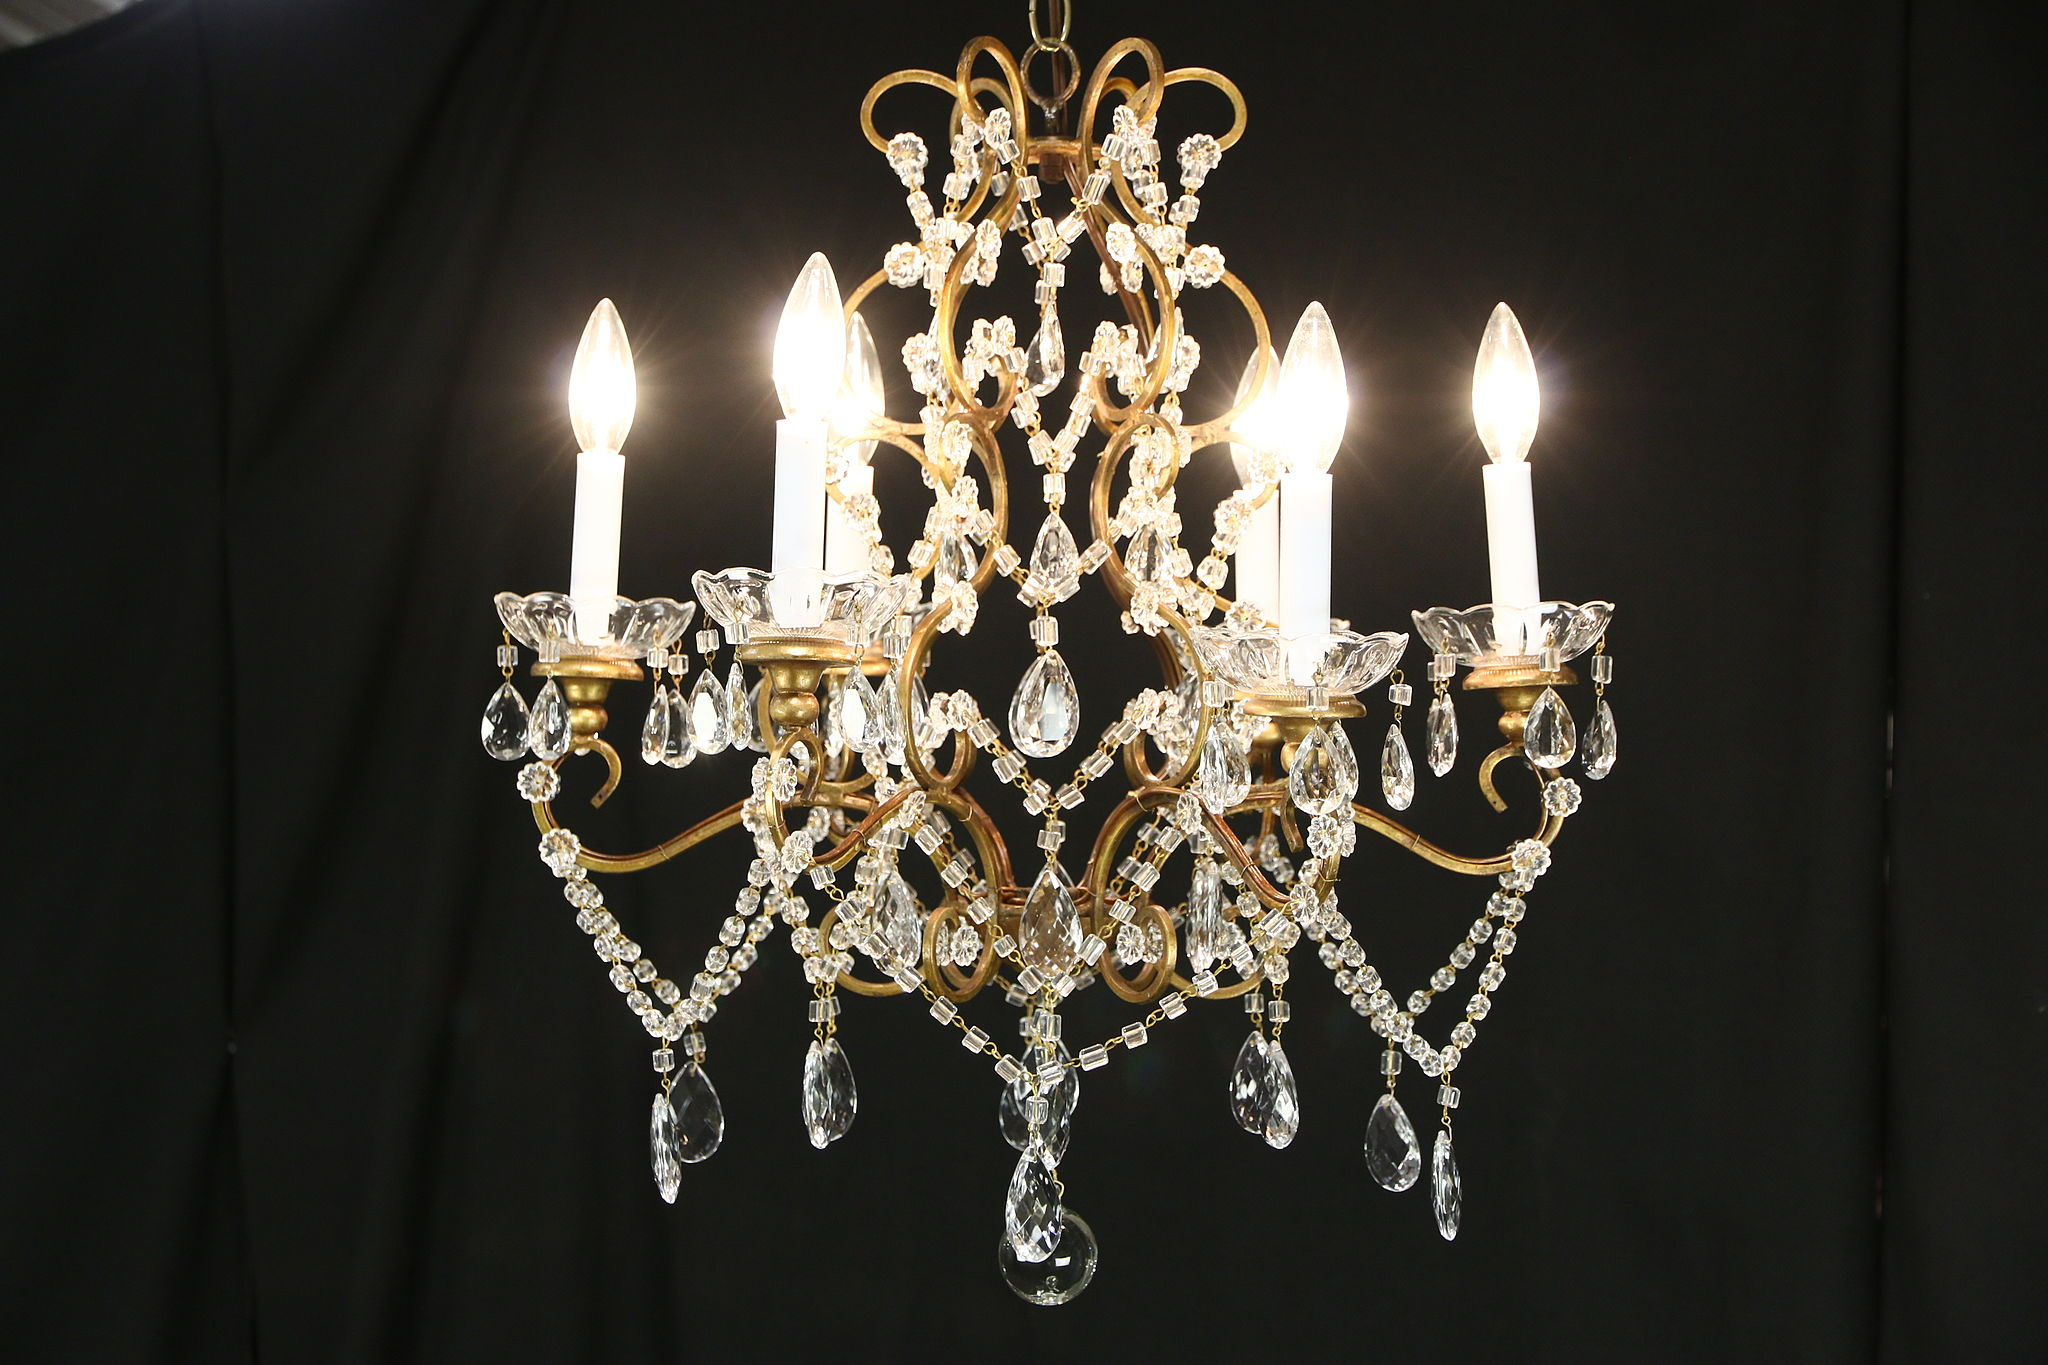 Sold six candle 1940s vintage chandelier crystal prisms beads six candle 1940s vintage chandelier crystal prisms beads ball aloadofball Image collections